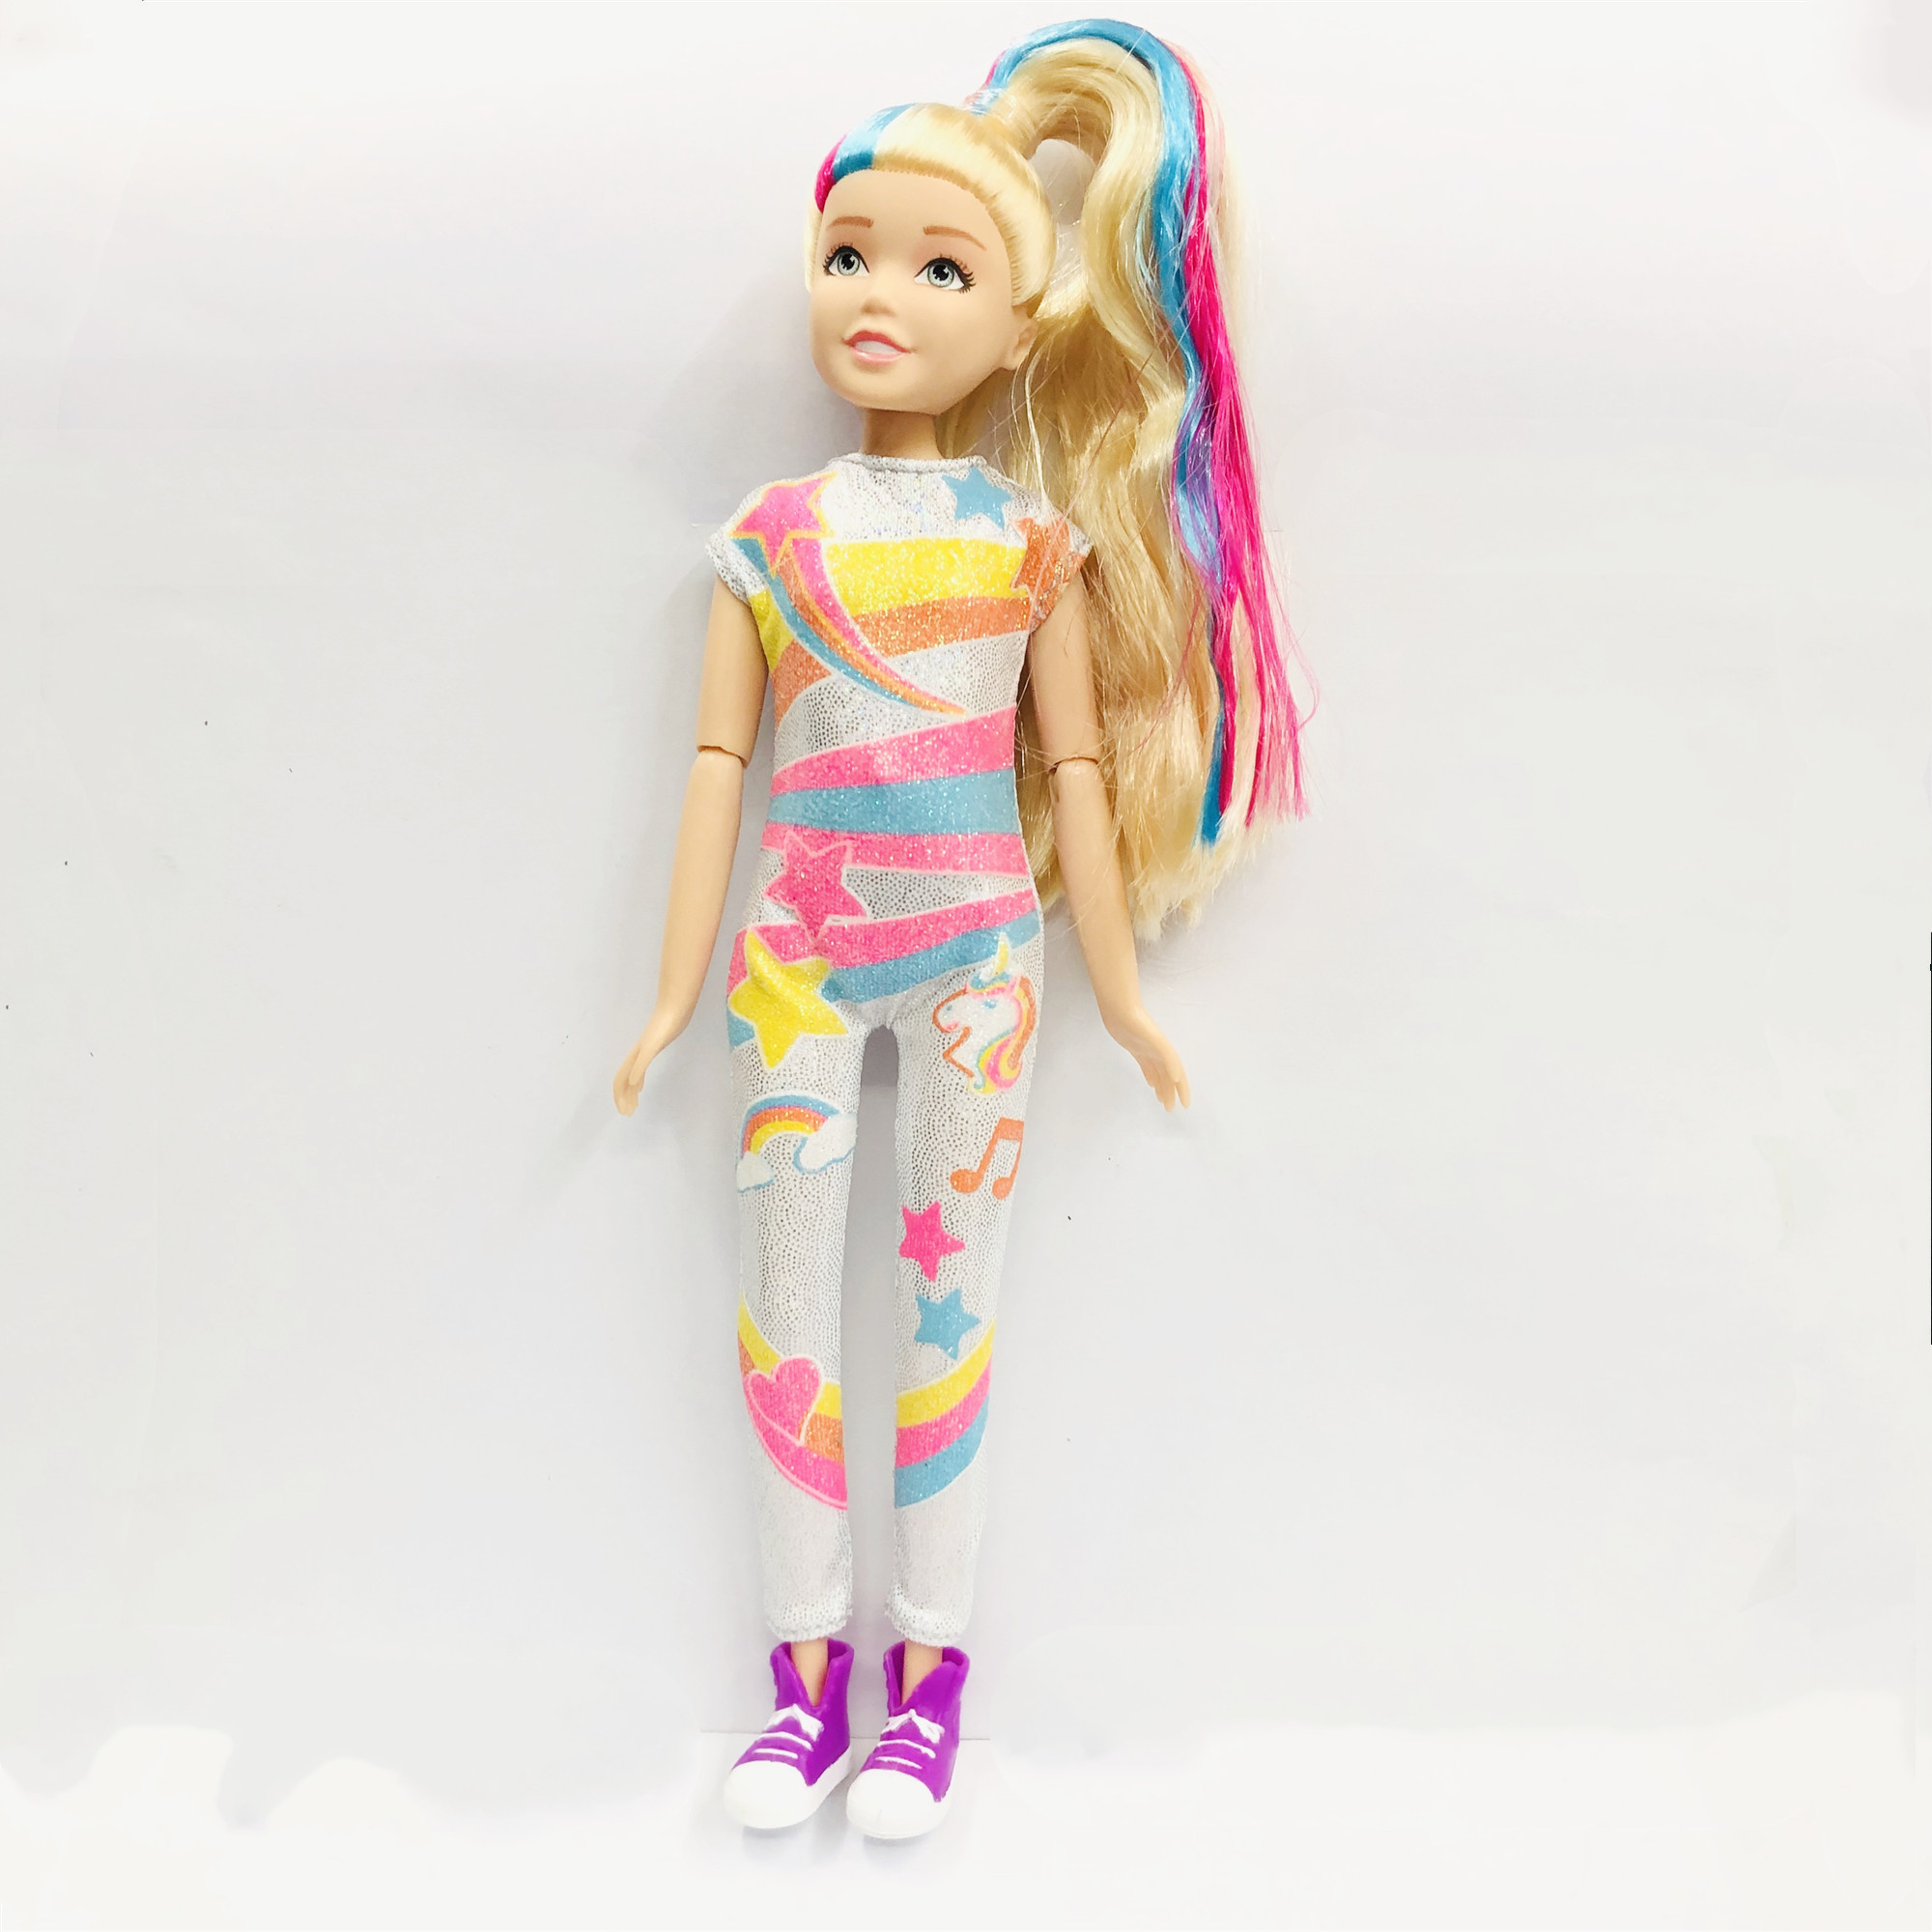 Original Girls Sports Fashion Girl 7 Joints Doll Leisure Princess Dolls Toy Lovely Doll Christmas Gift